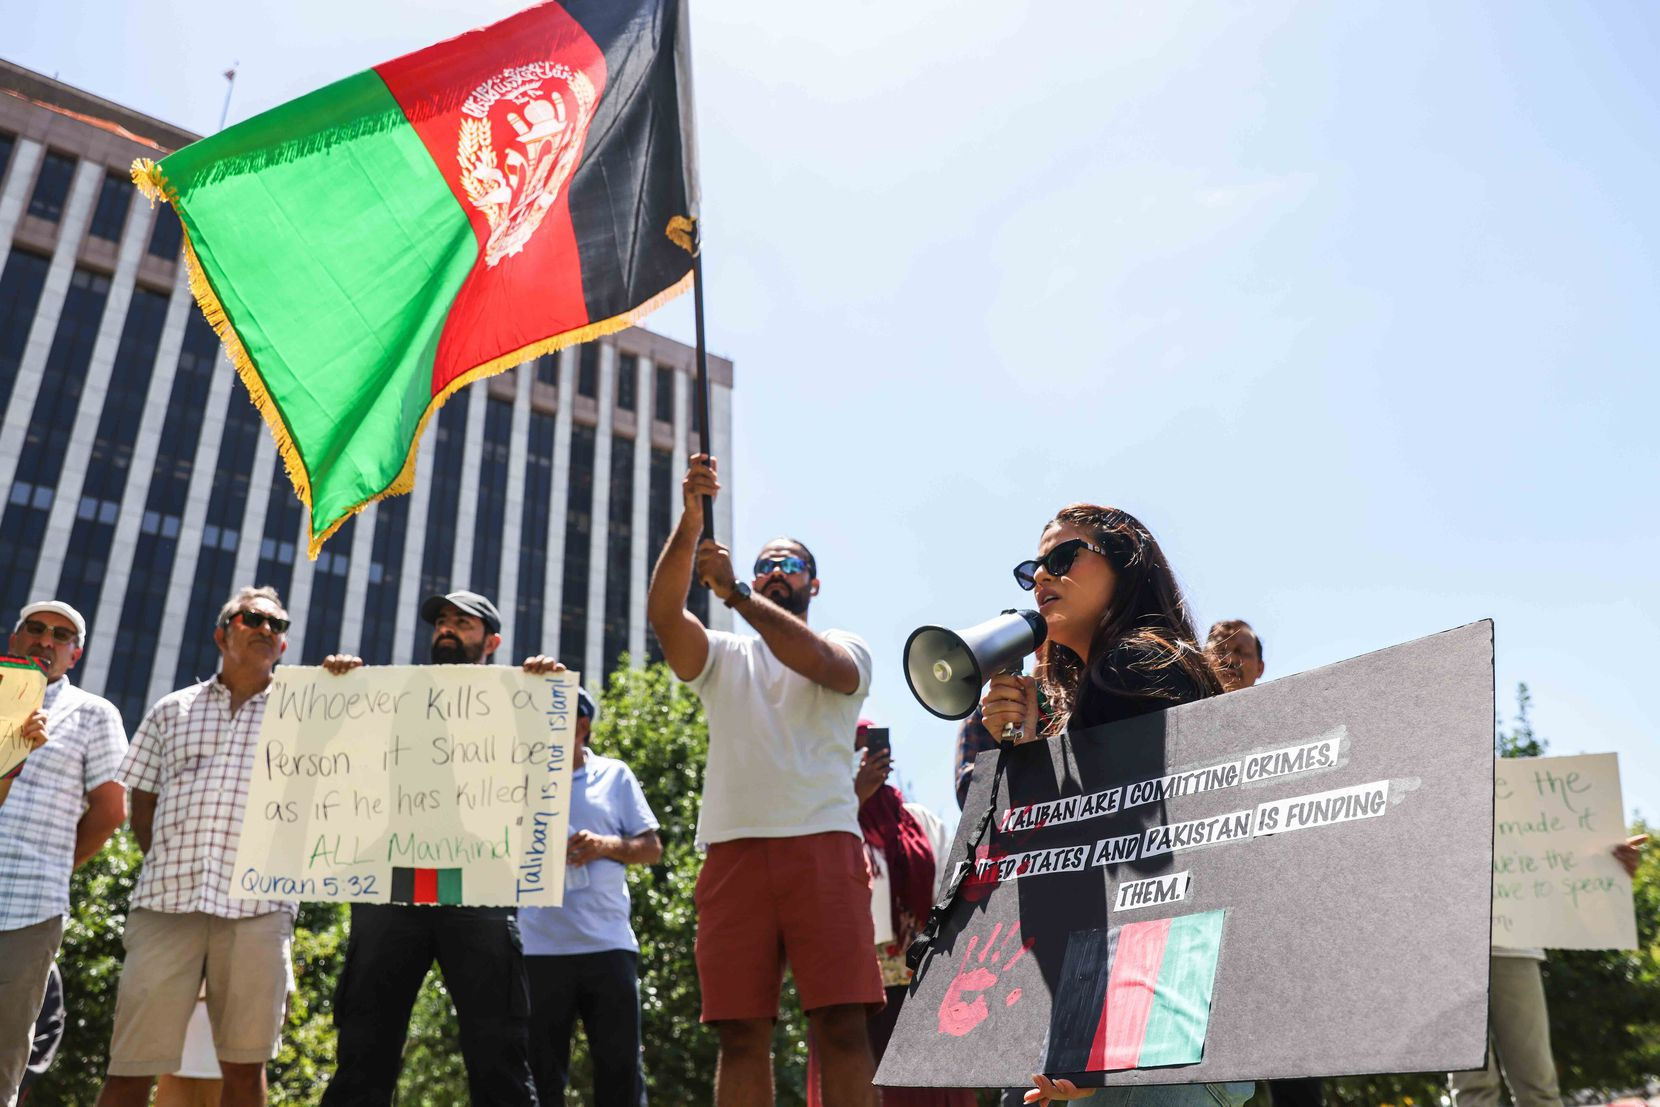 Sahar Salehi Abushagur, founder of the group Stop Killing Afghans group, addressed the crowd at Saturday's rally and march, which were held in and around Belo Garden in downtown Dallas.